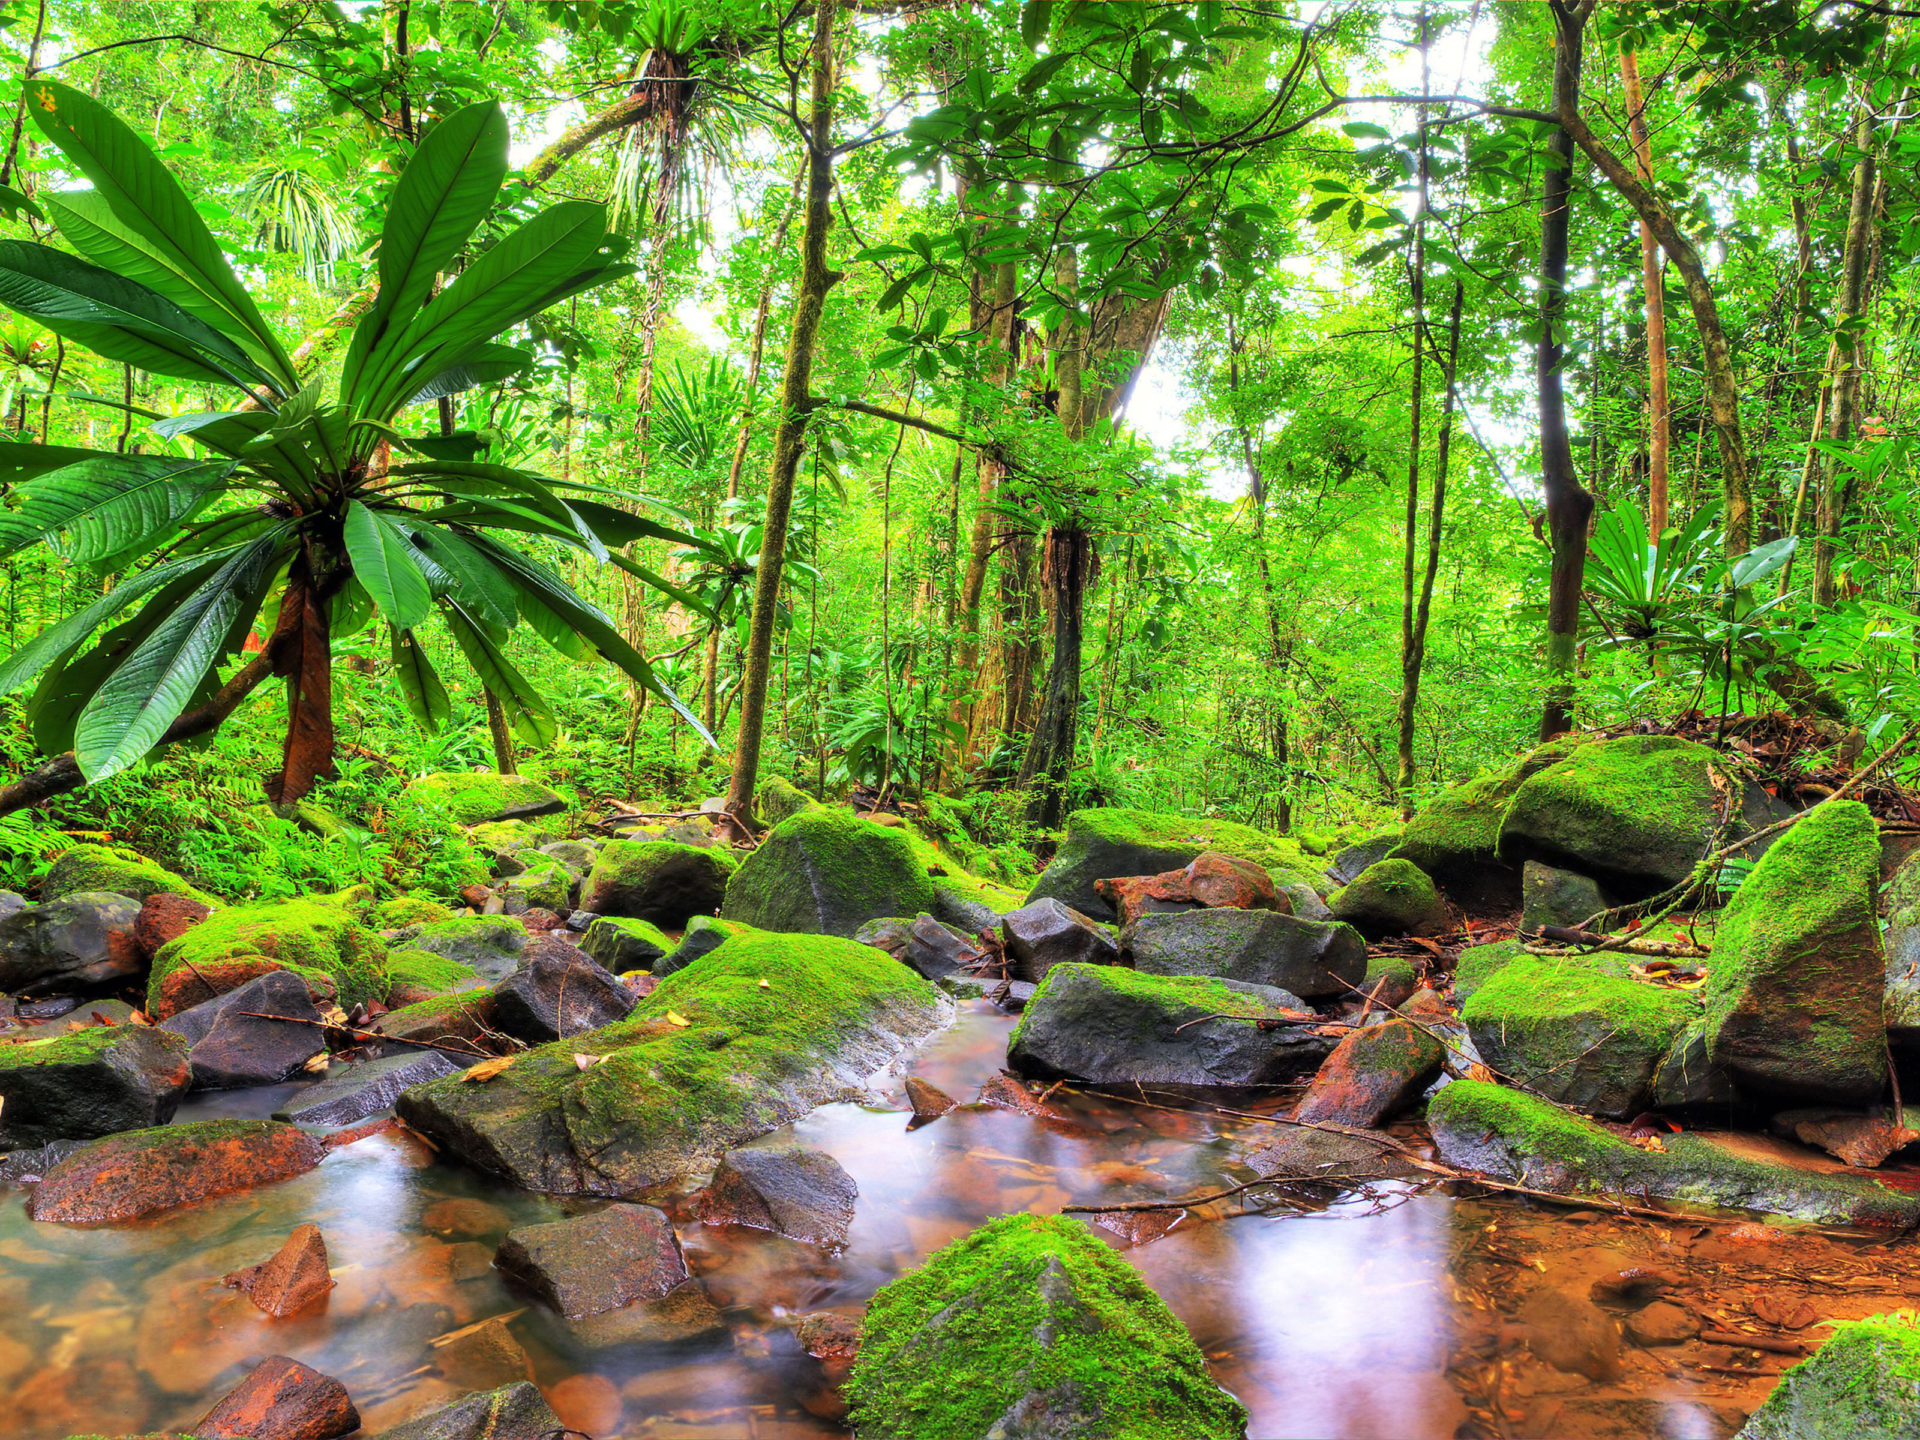 Disney Fall Desktop Wallpaper Exotic Tropical Landscape Jungle Flow Stones Rocks With